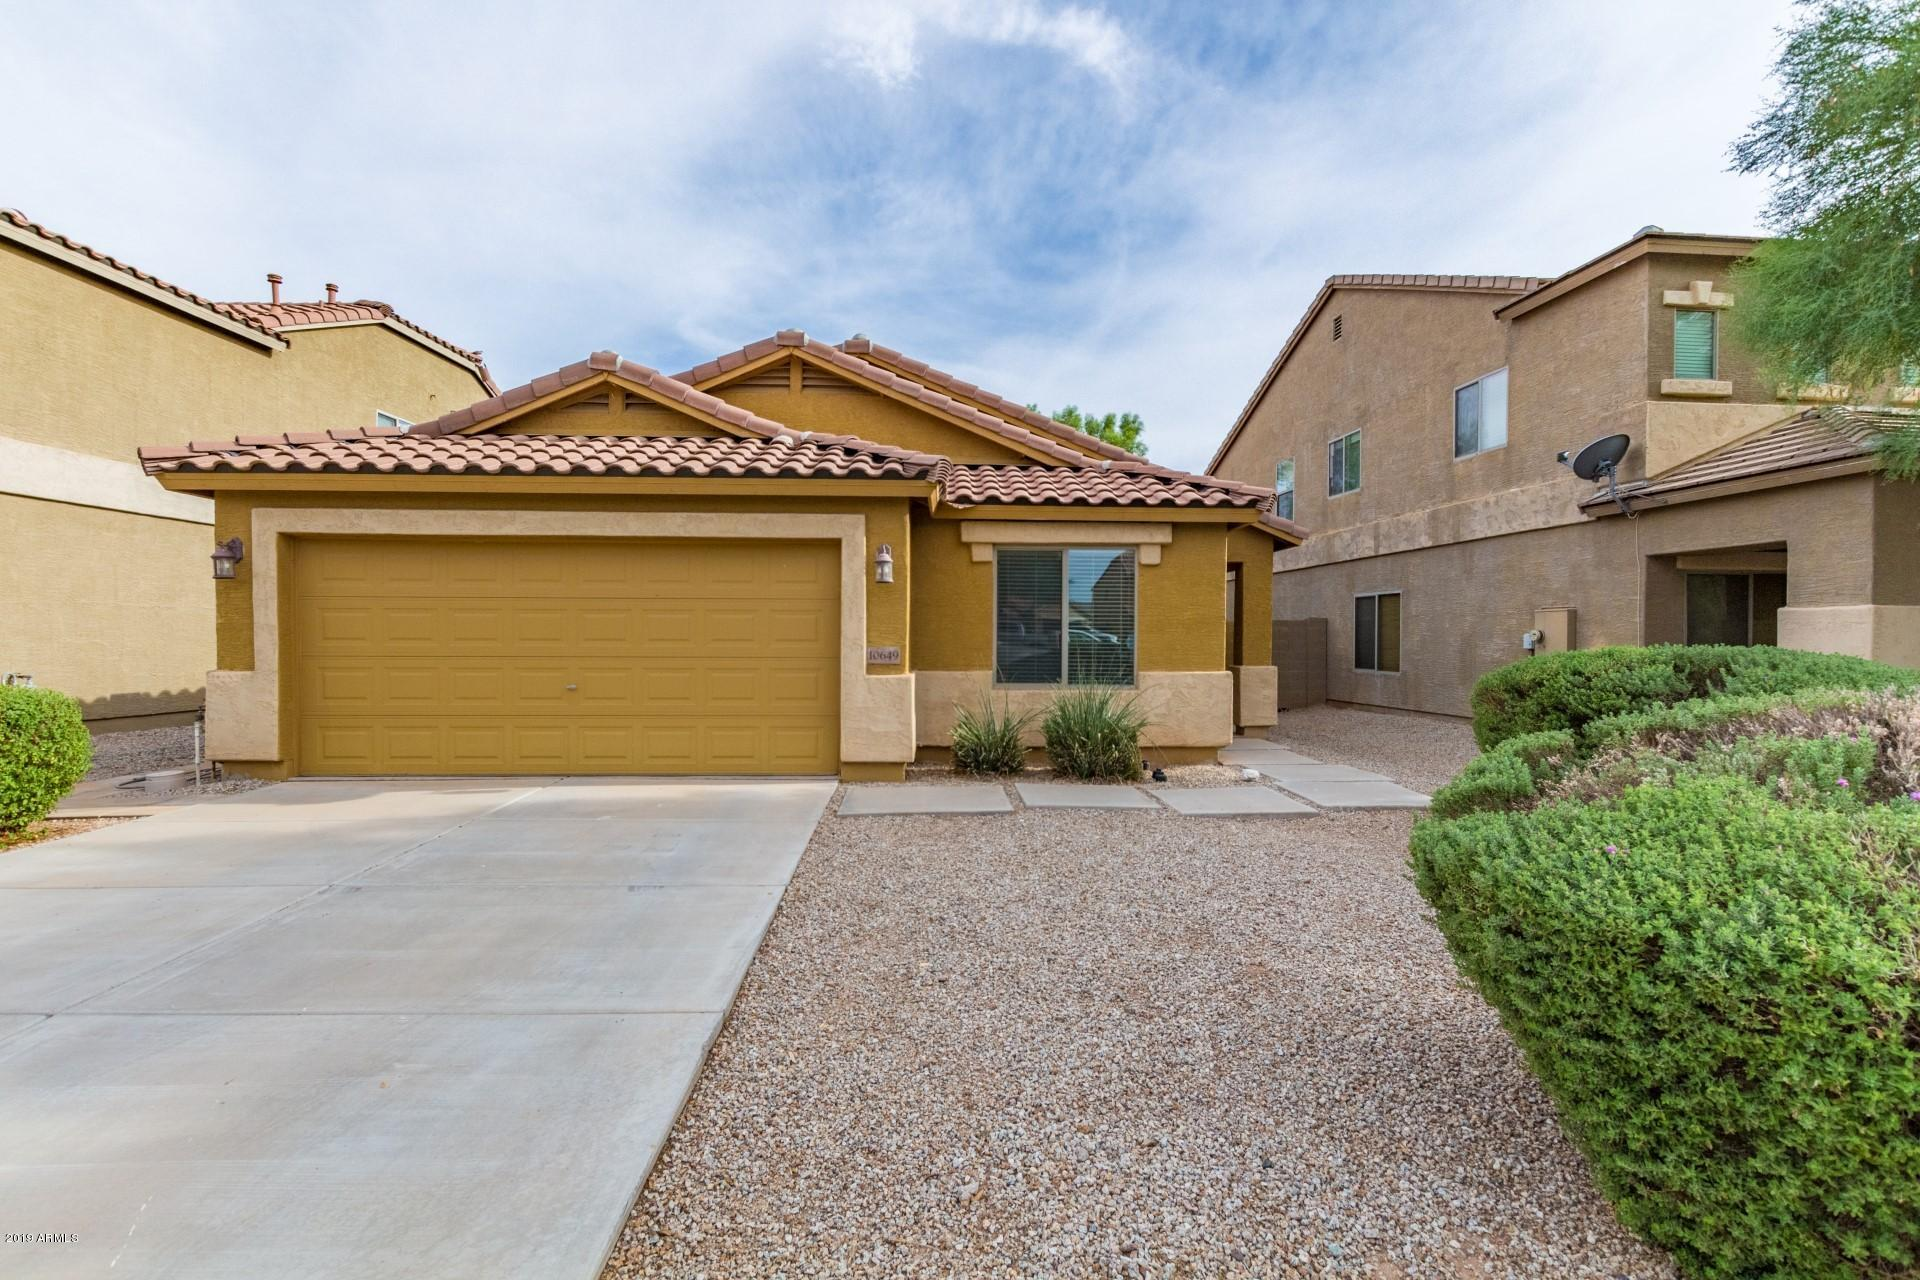 Florence High School Middle School Homes for Sale in AZ | AZ